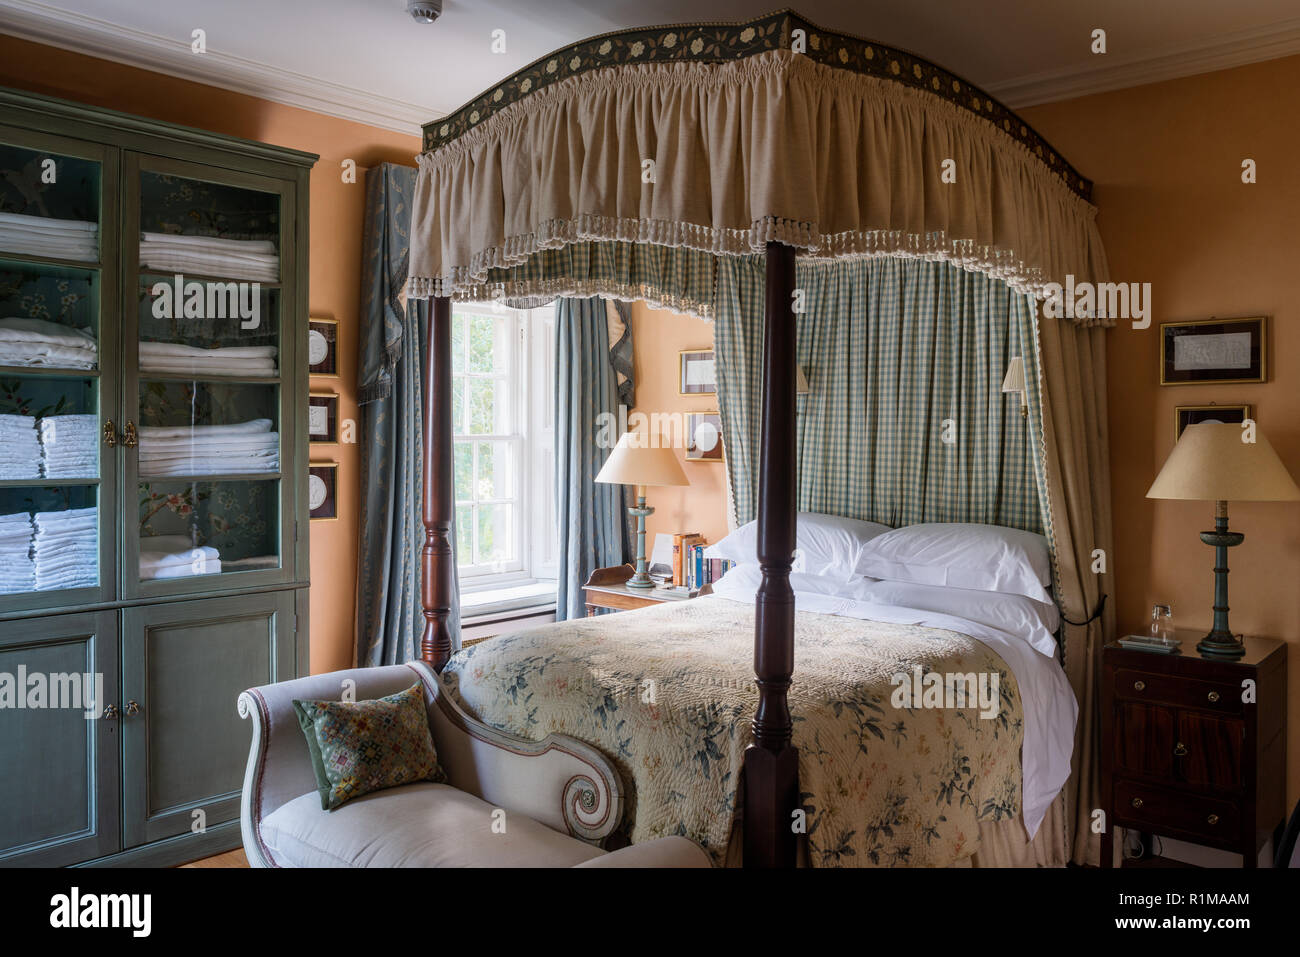 Canopy bed in Edwardian style bedroom - Stock Image